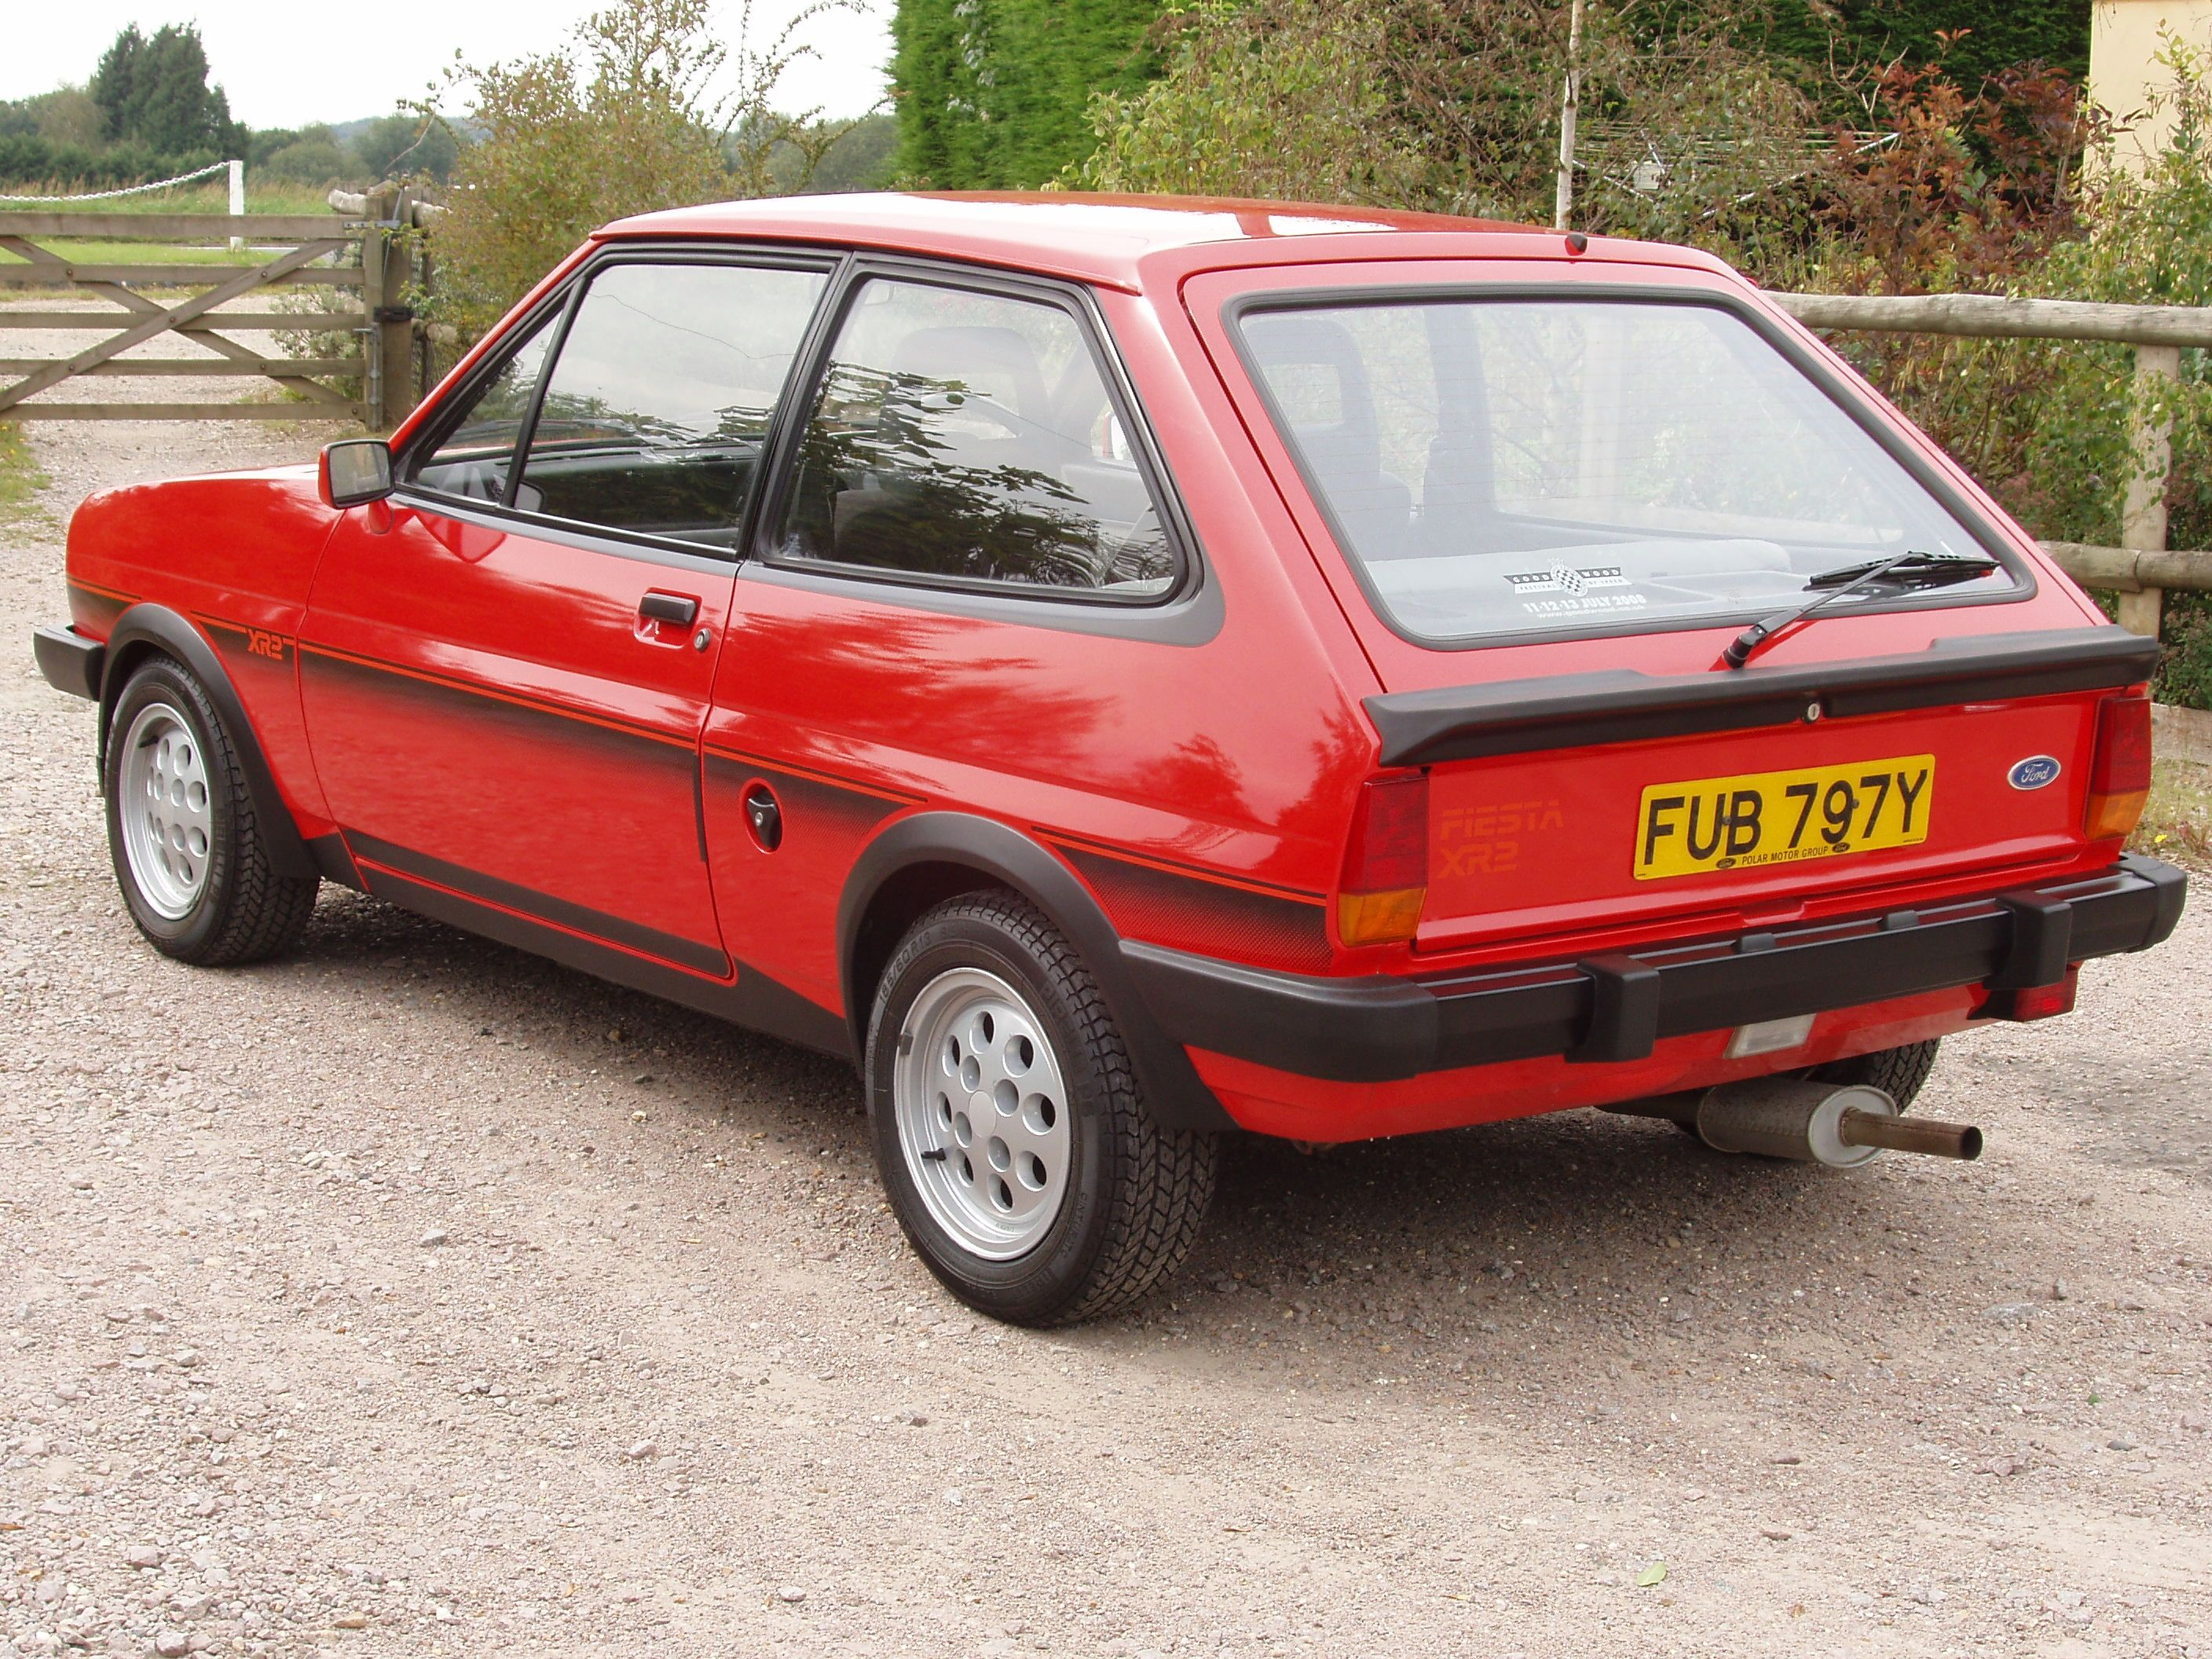 Fiesta XR2i - 2 | Ford Europe | Ford, Cars, Old fords